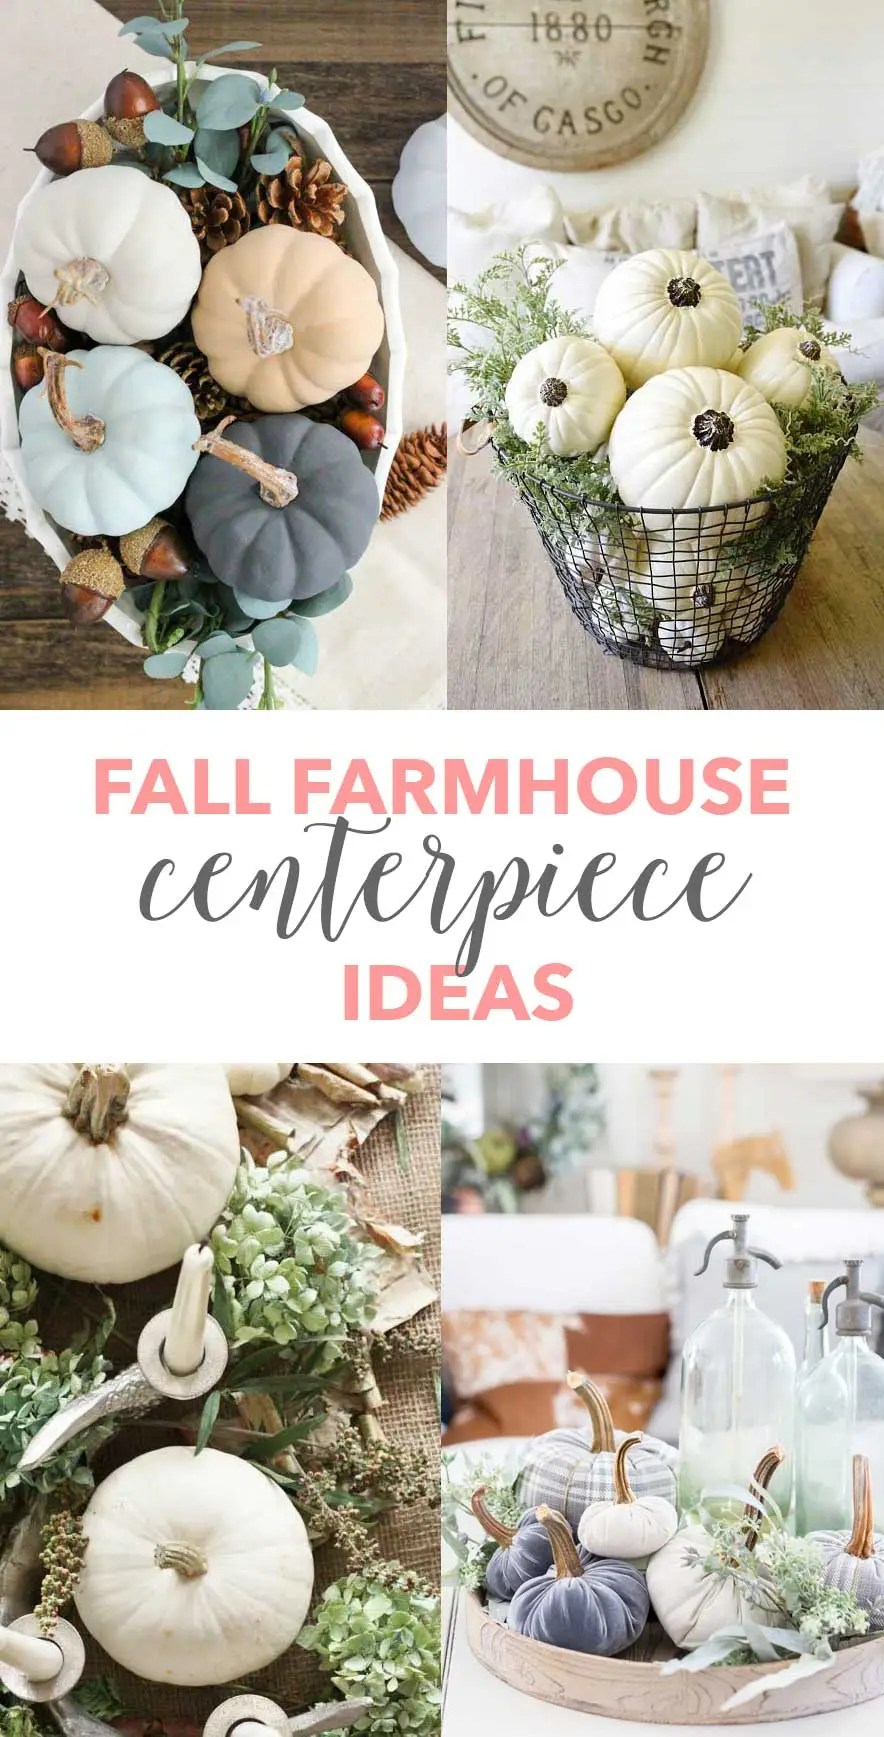 Fall Farmhouse Centerpiece Ideas - Some great ideas for decorating my table for Fall! aheartfilledhome.com